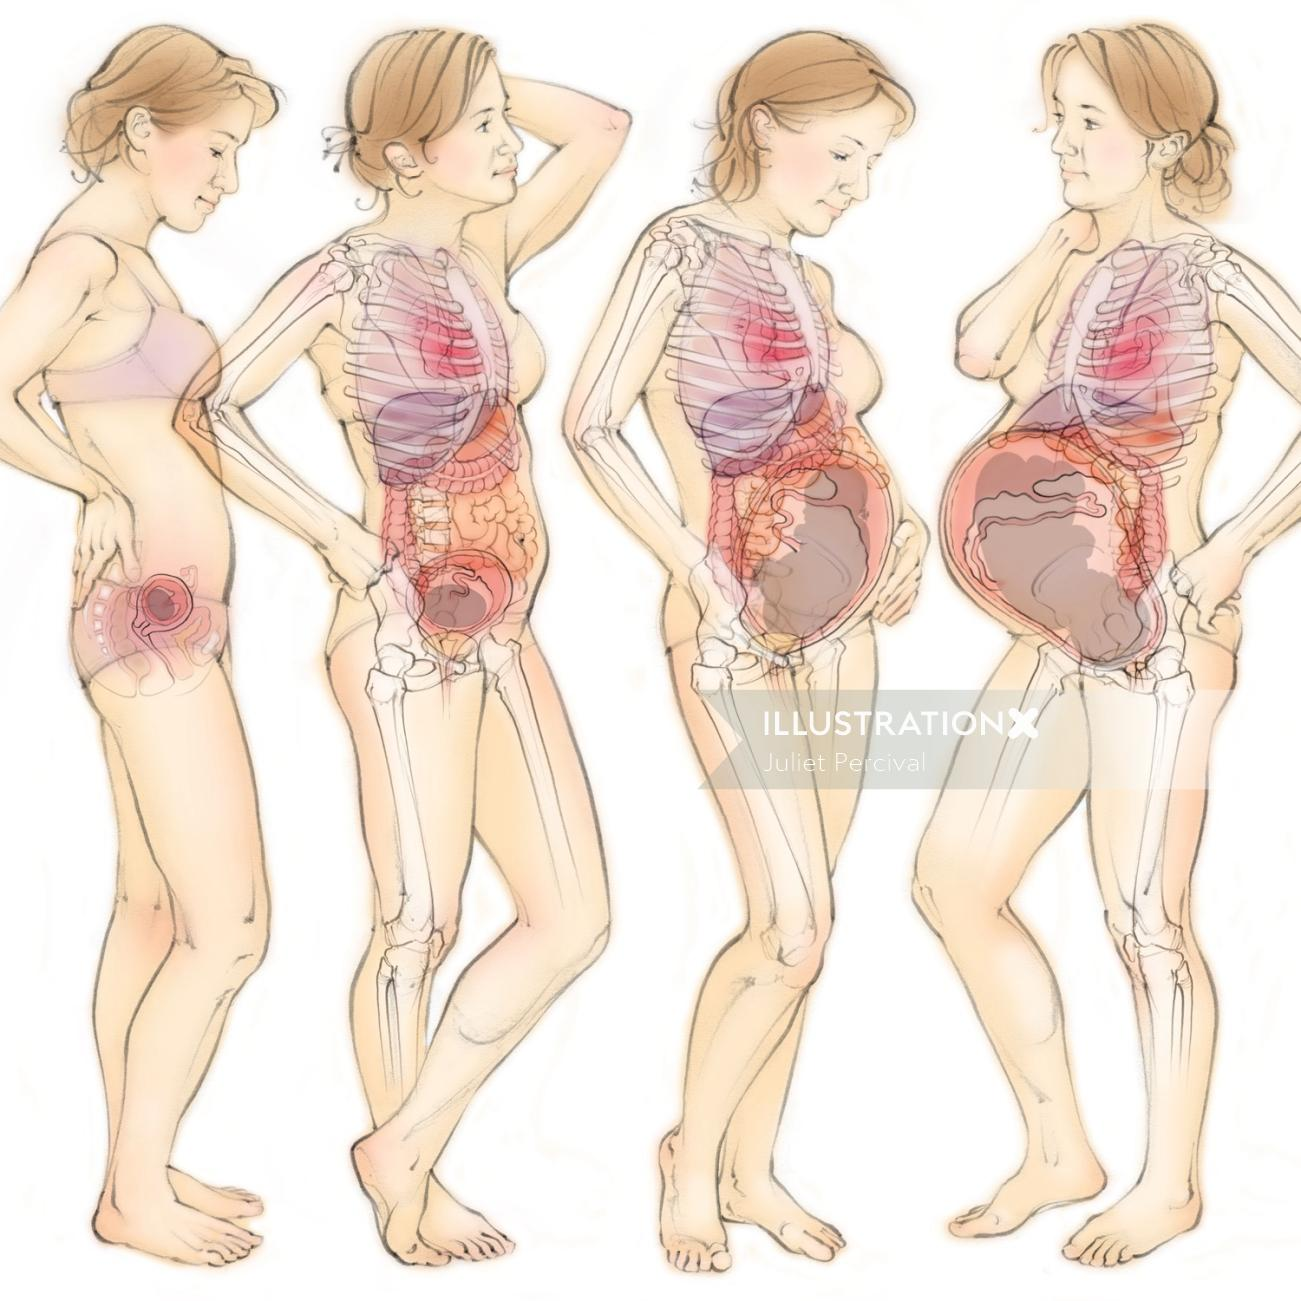 Anatomy of pregnancy - Medical illustration collection